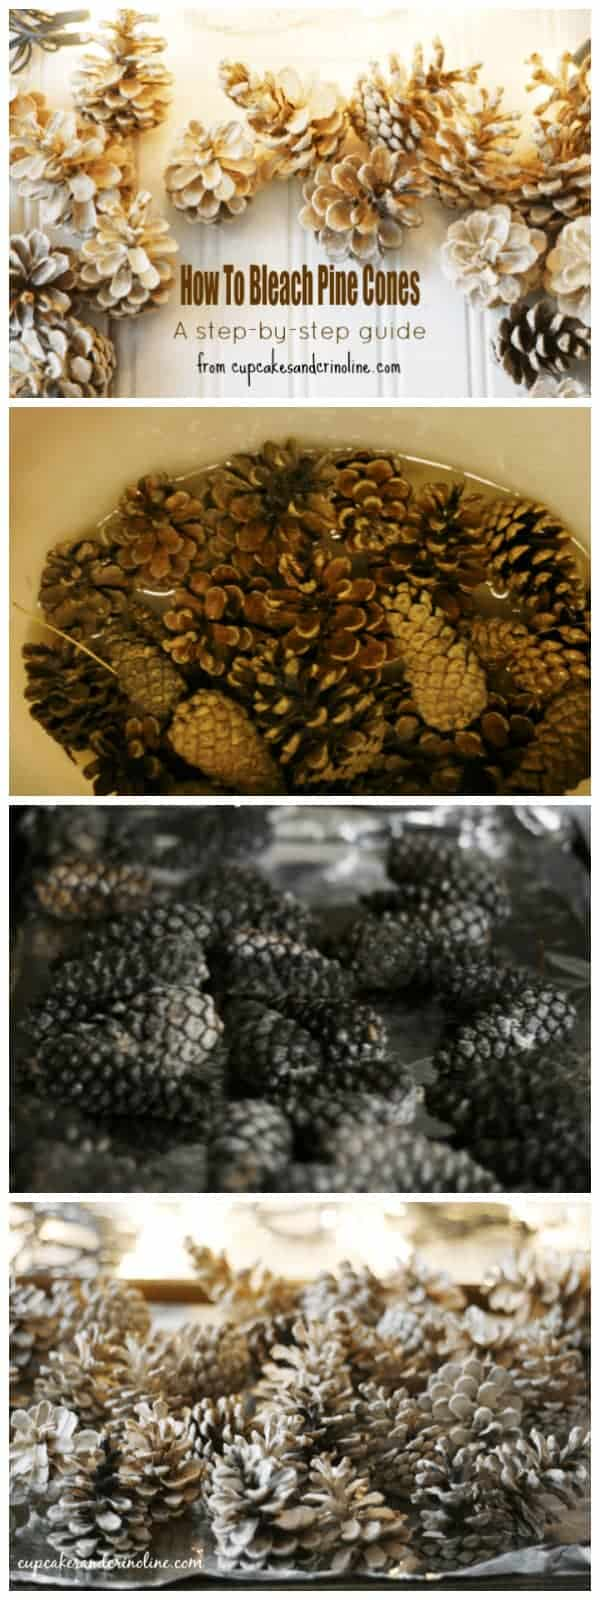 How to bleach pine cones - a step-by-step guide from www.cupcakesandcrinoline.com